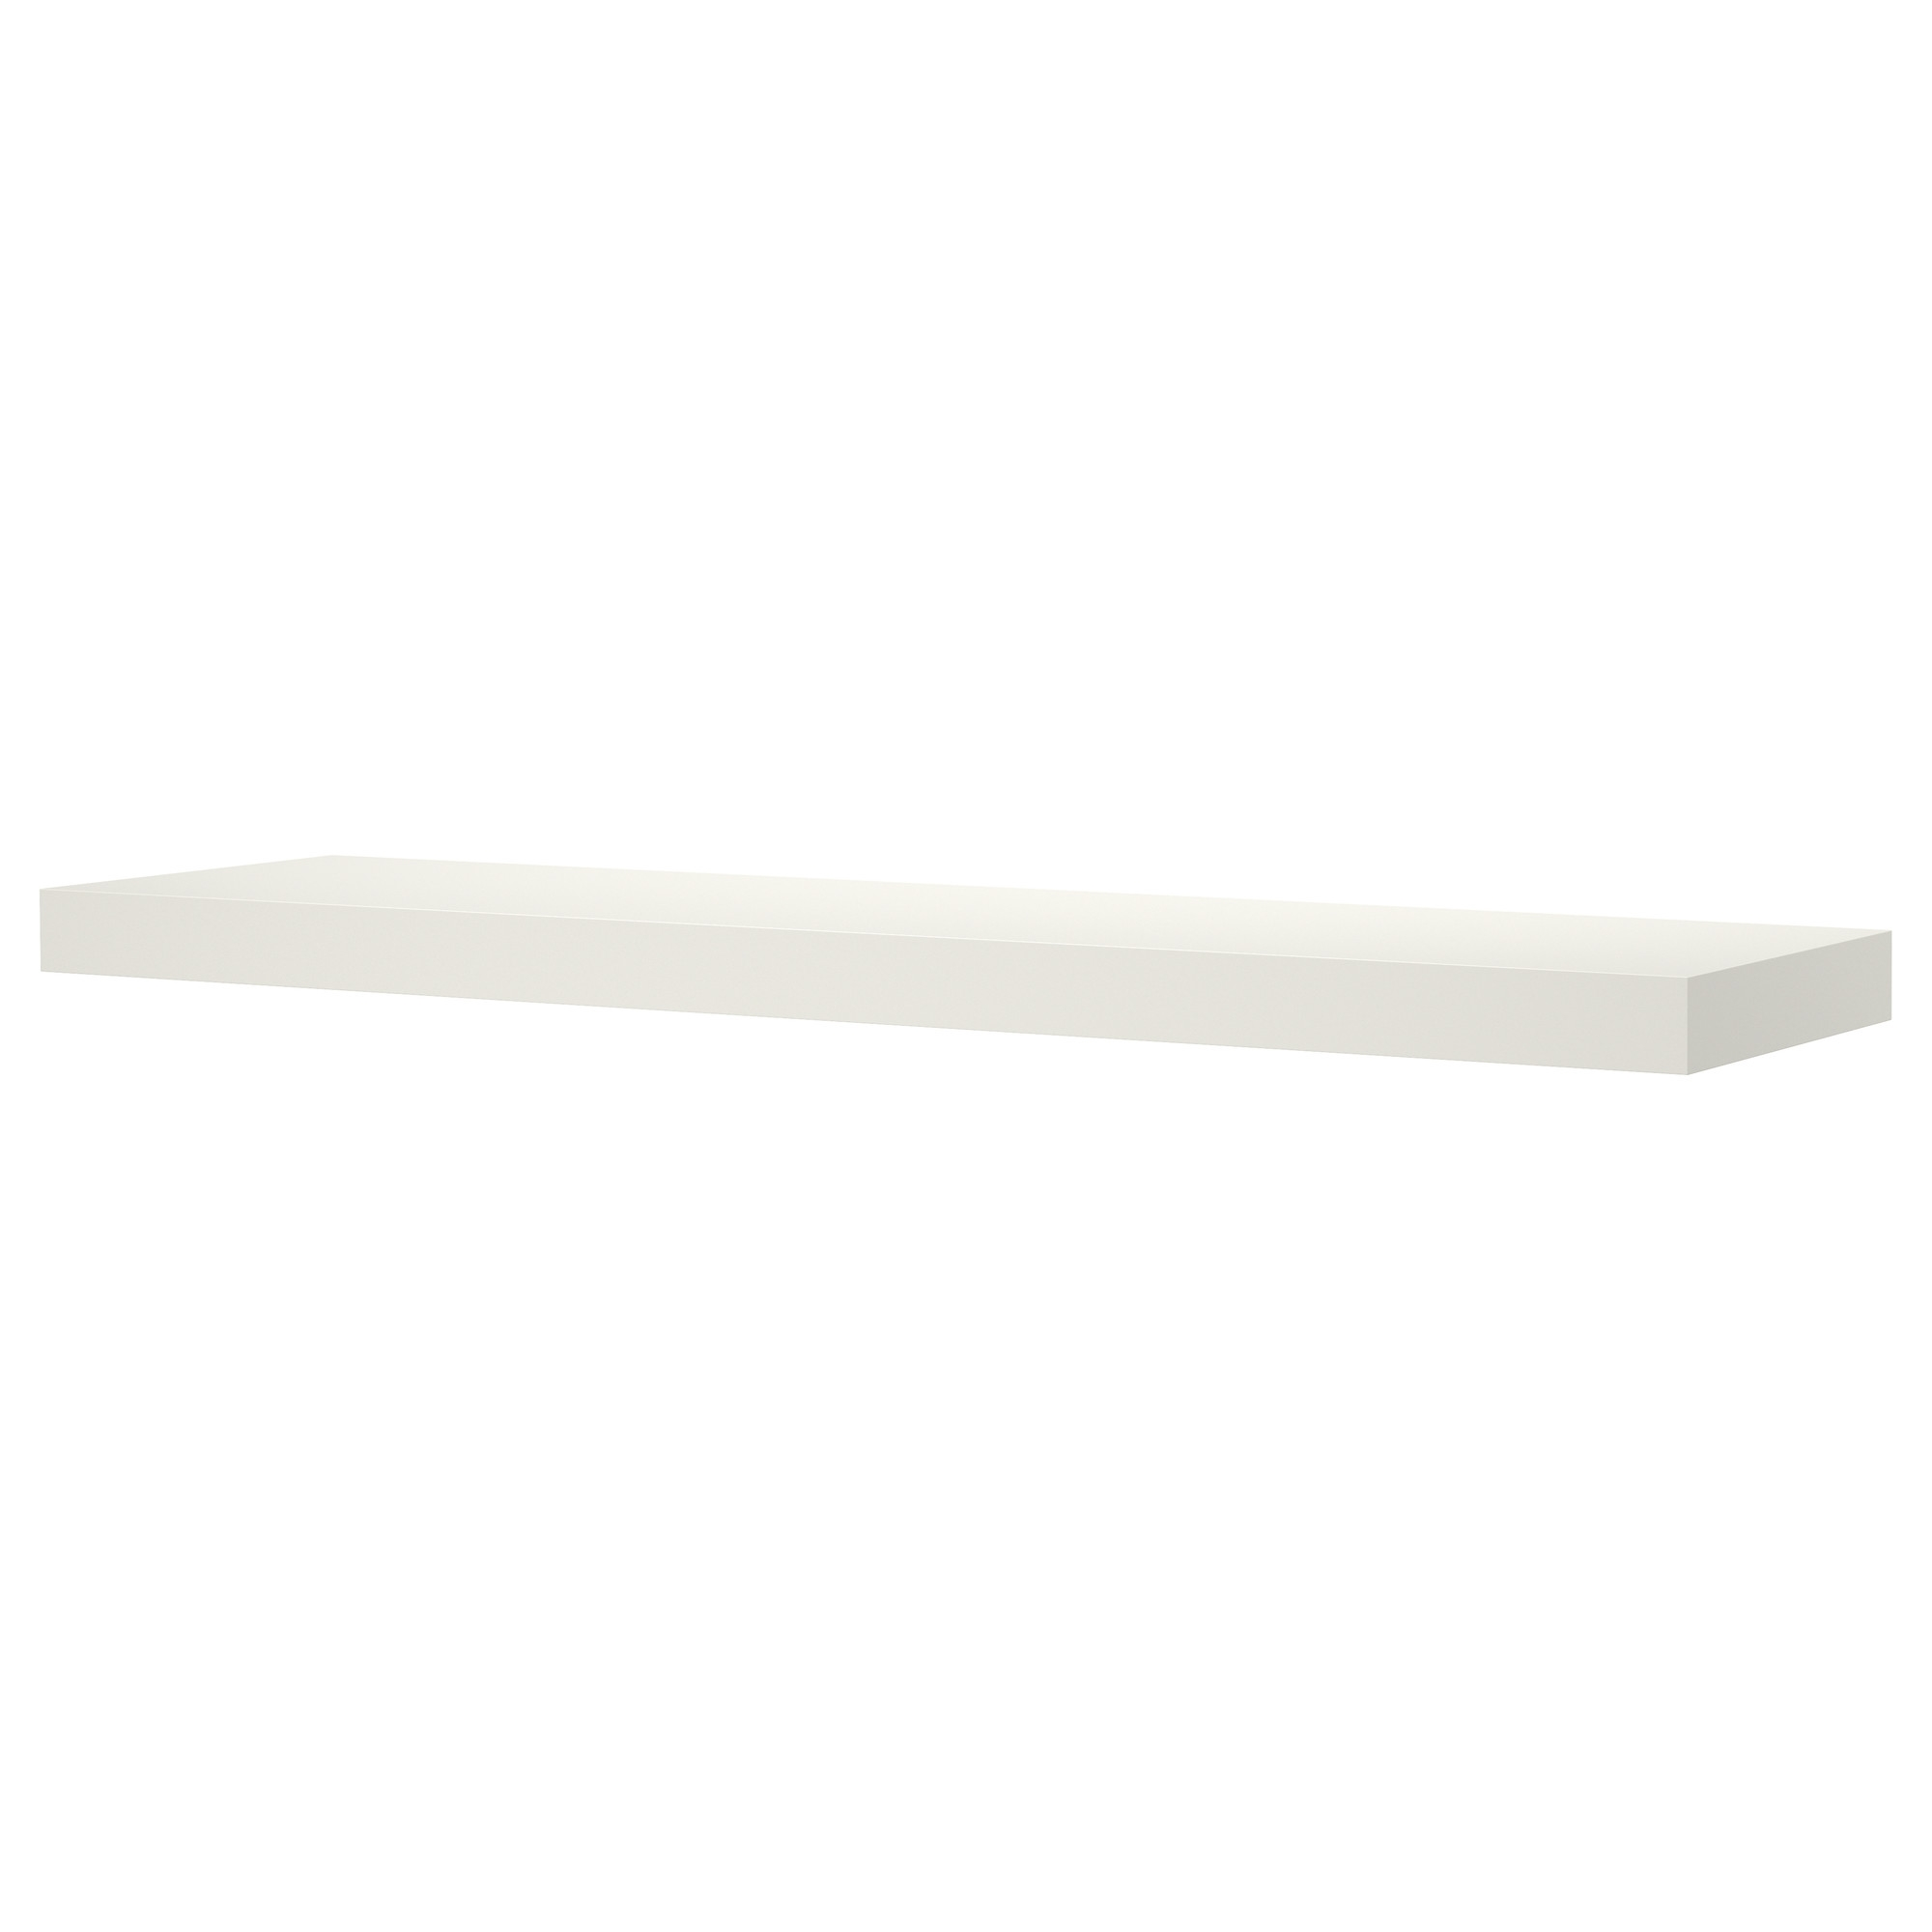 Lack Wall Shelf White Ikea Pertaining To White Wall Shelves (View 1 of 15)